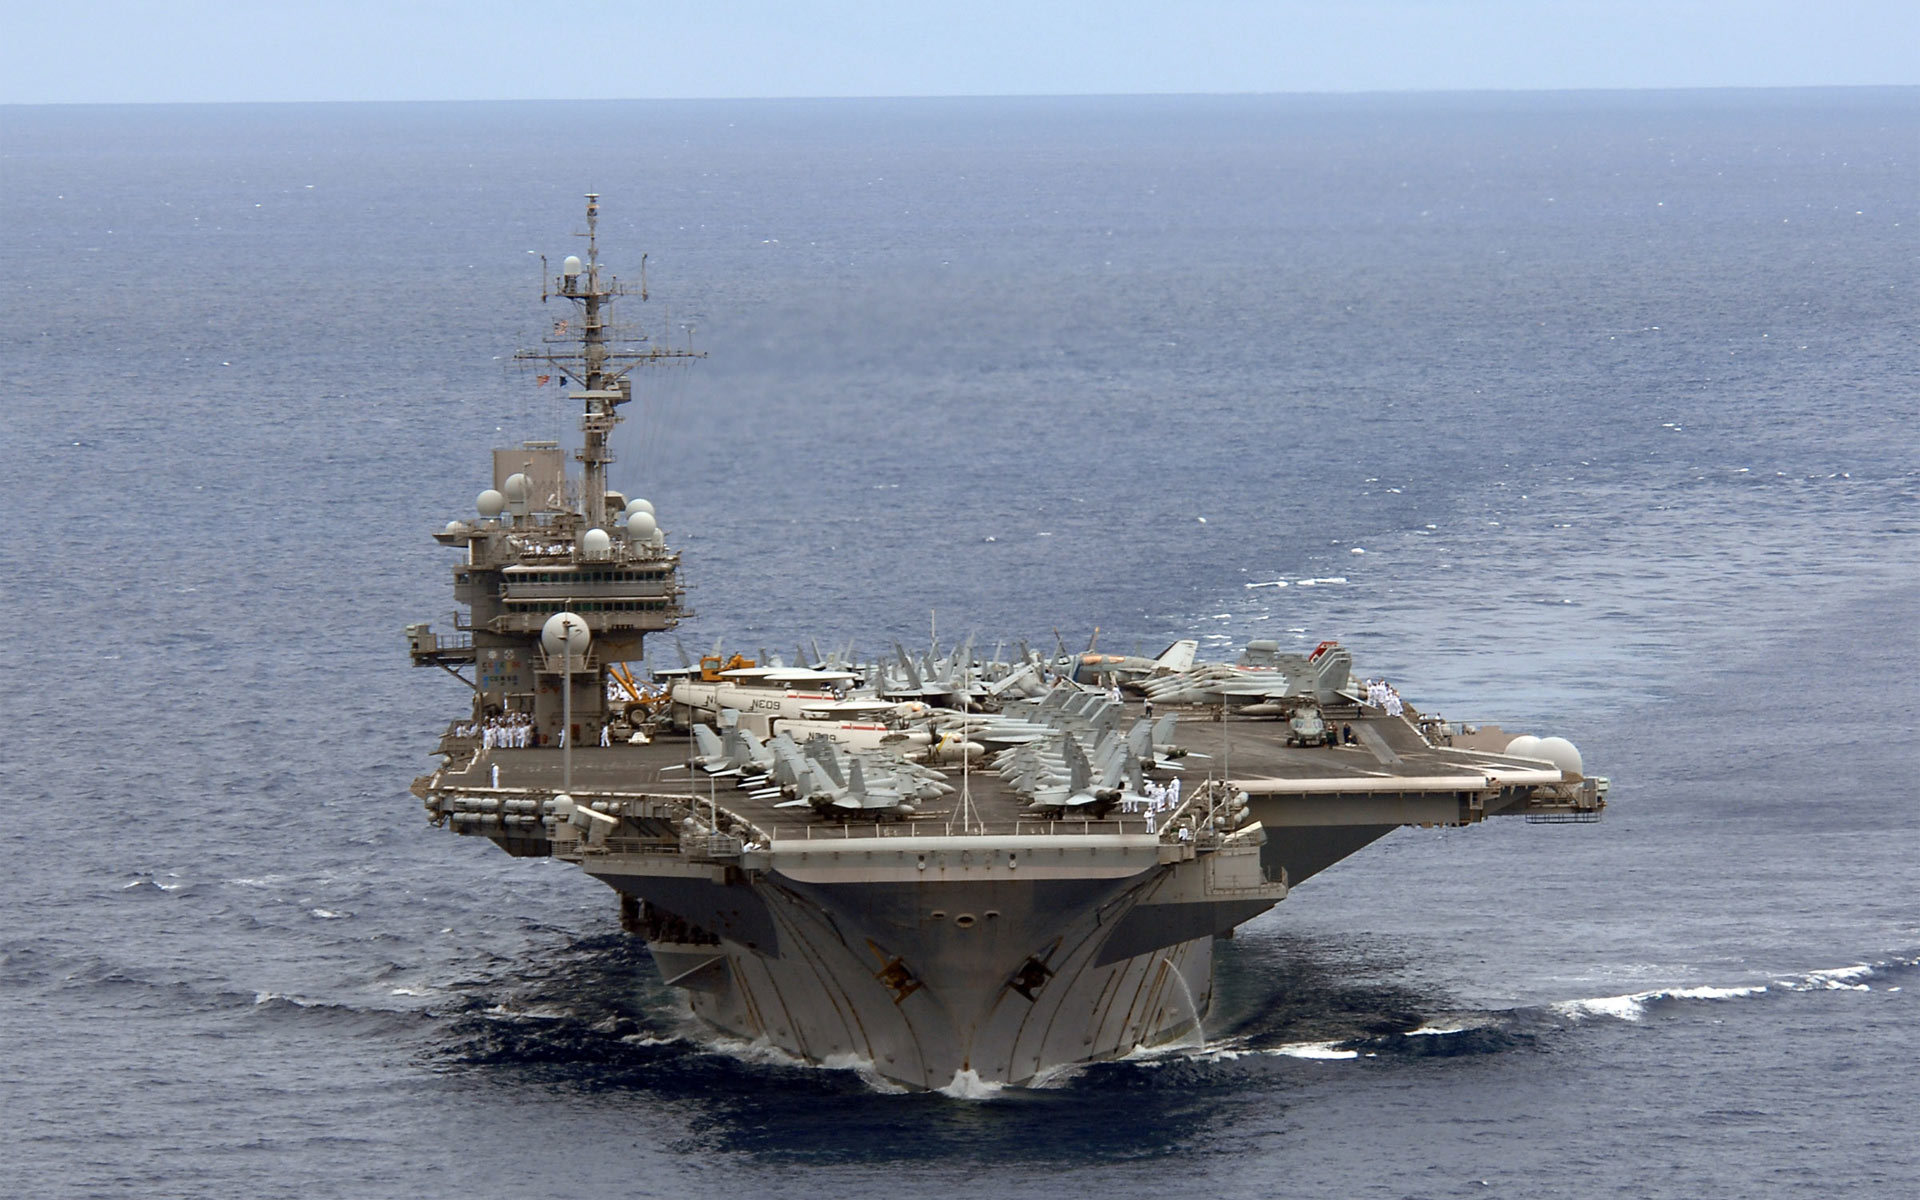 ocean ships aircraft carriers. HD Wallpaper